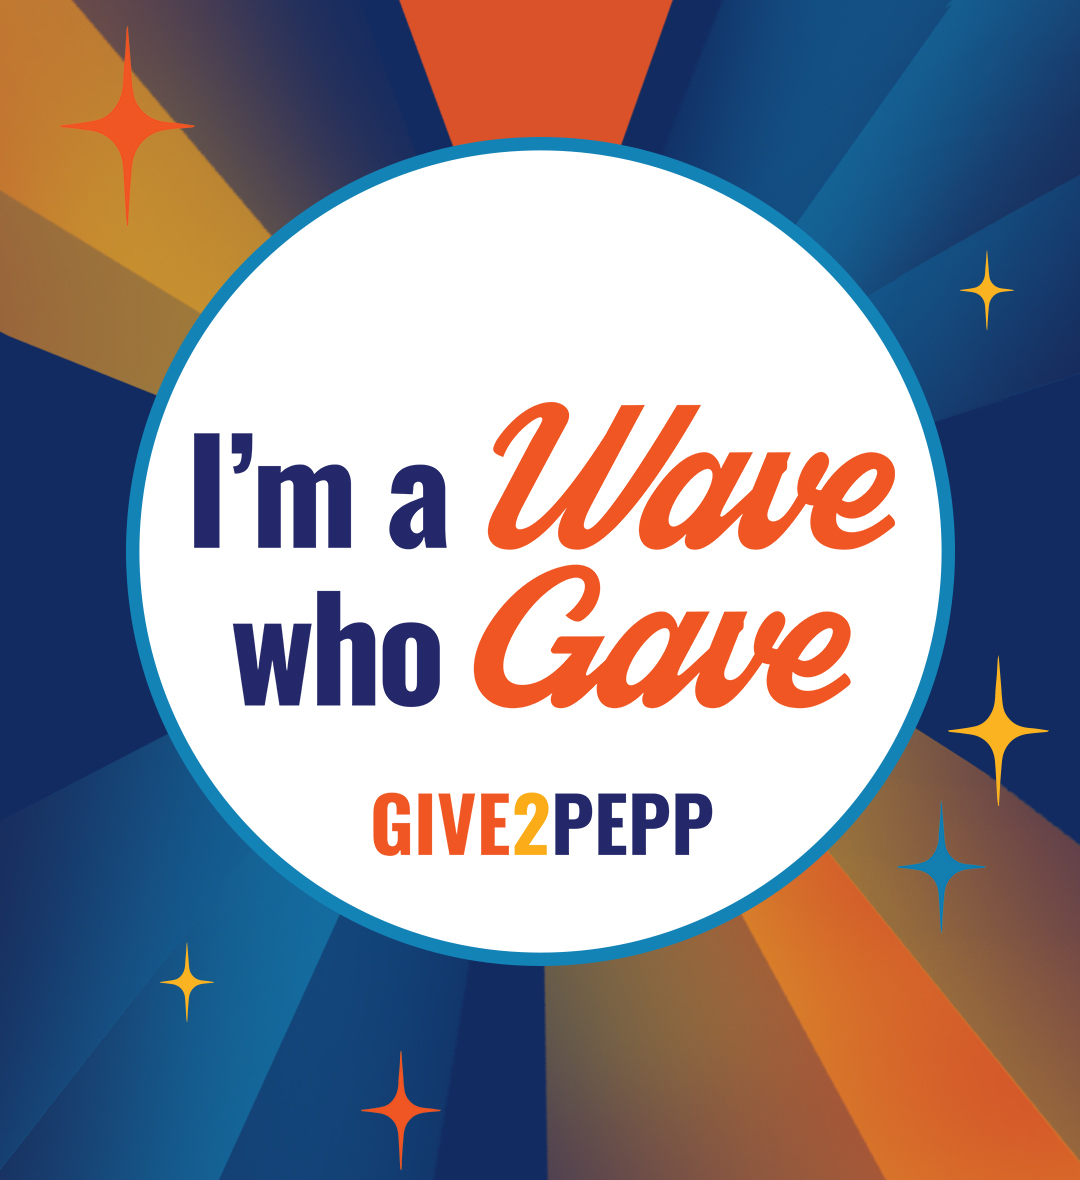 Give2Pepp Facebook - I'm a Wave who Gave (dark)